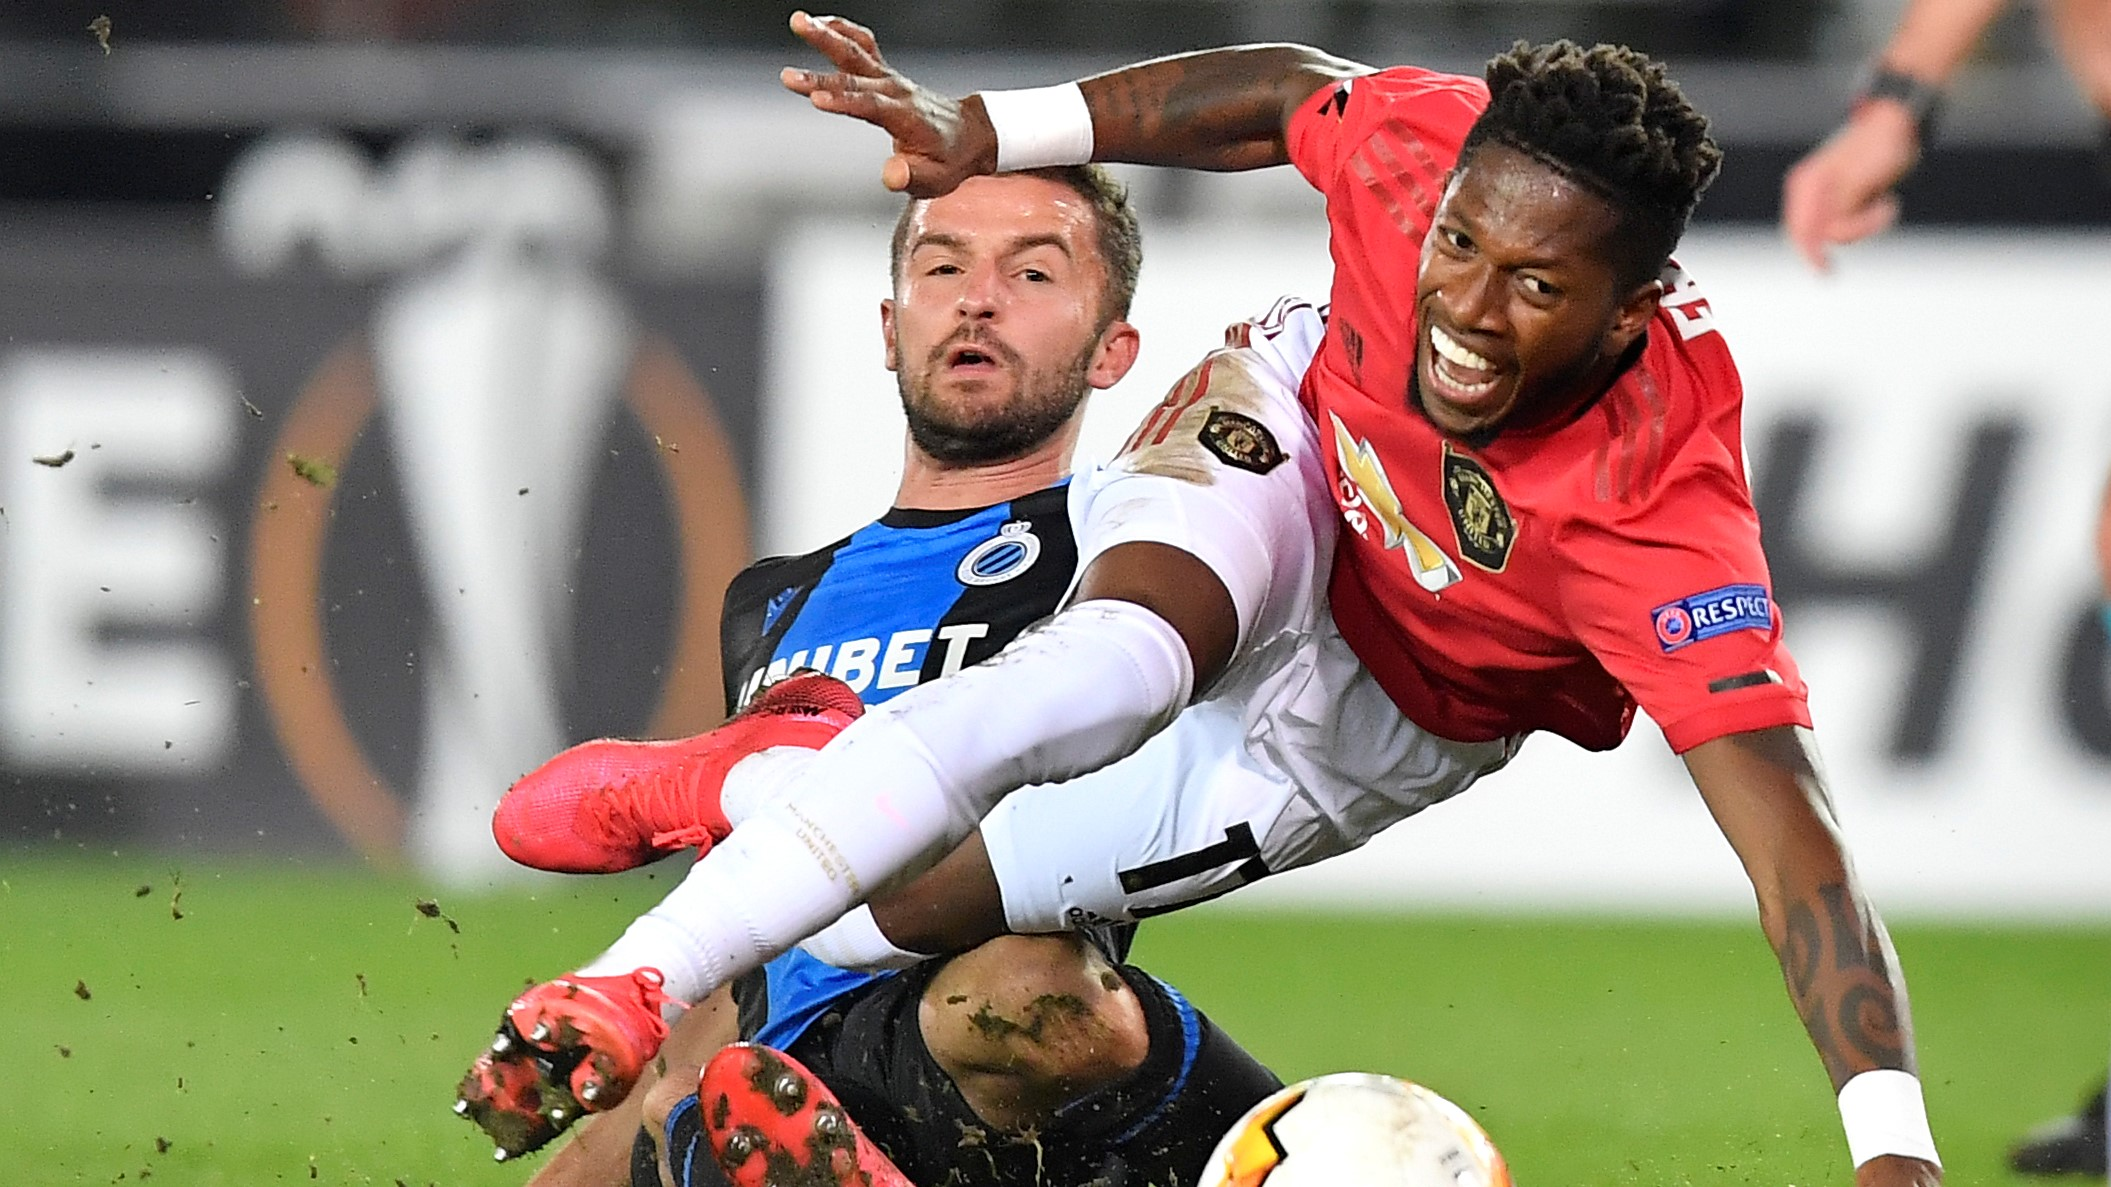 Manchester United vs Club Brugge live stream: watch Europa League 2020 football online from anywhere